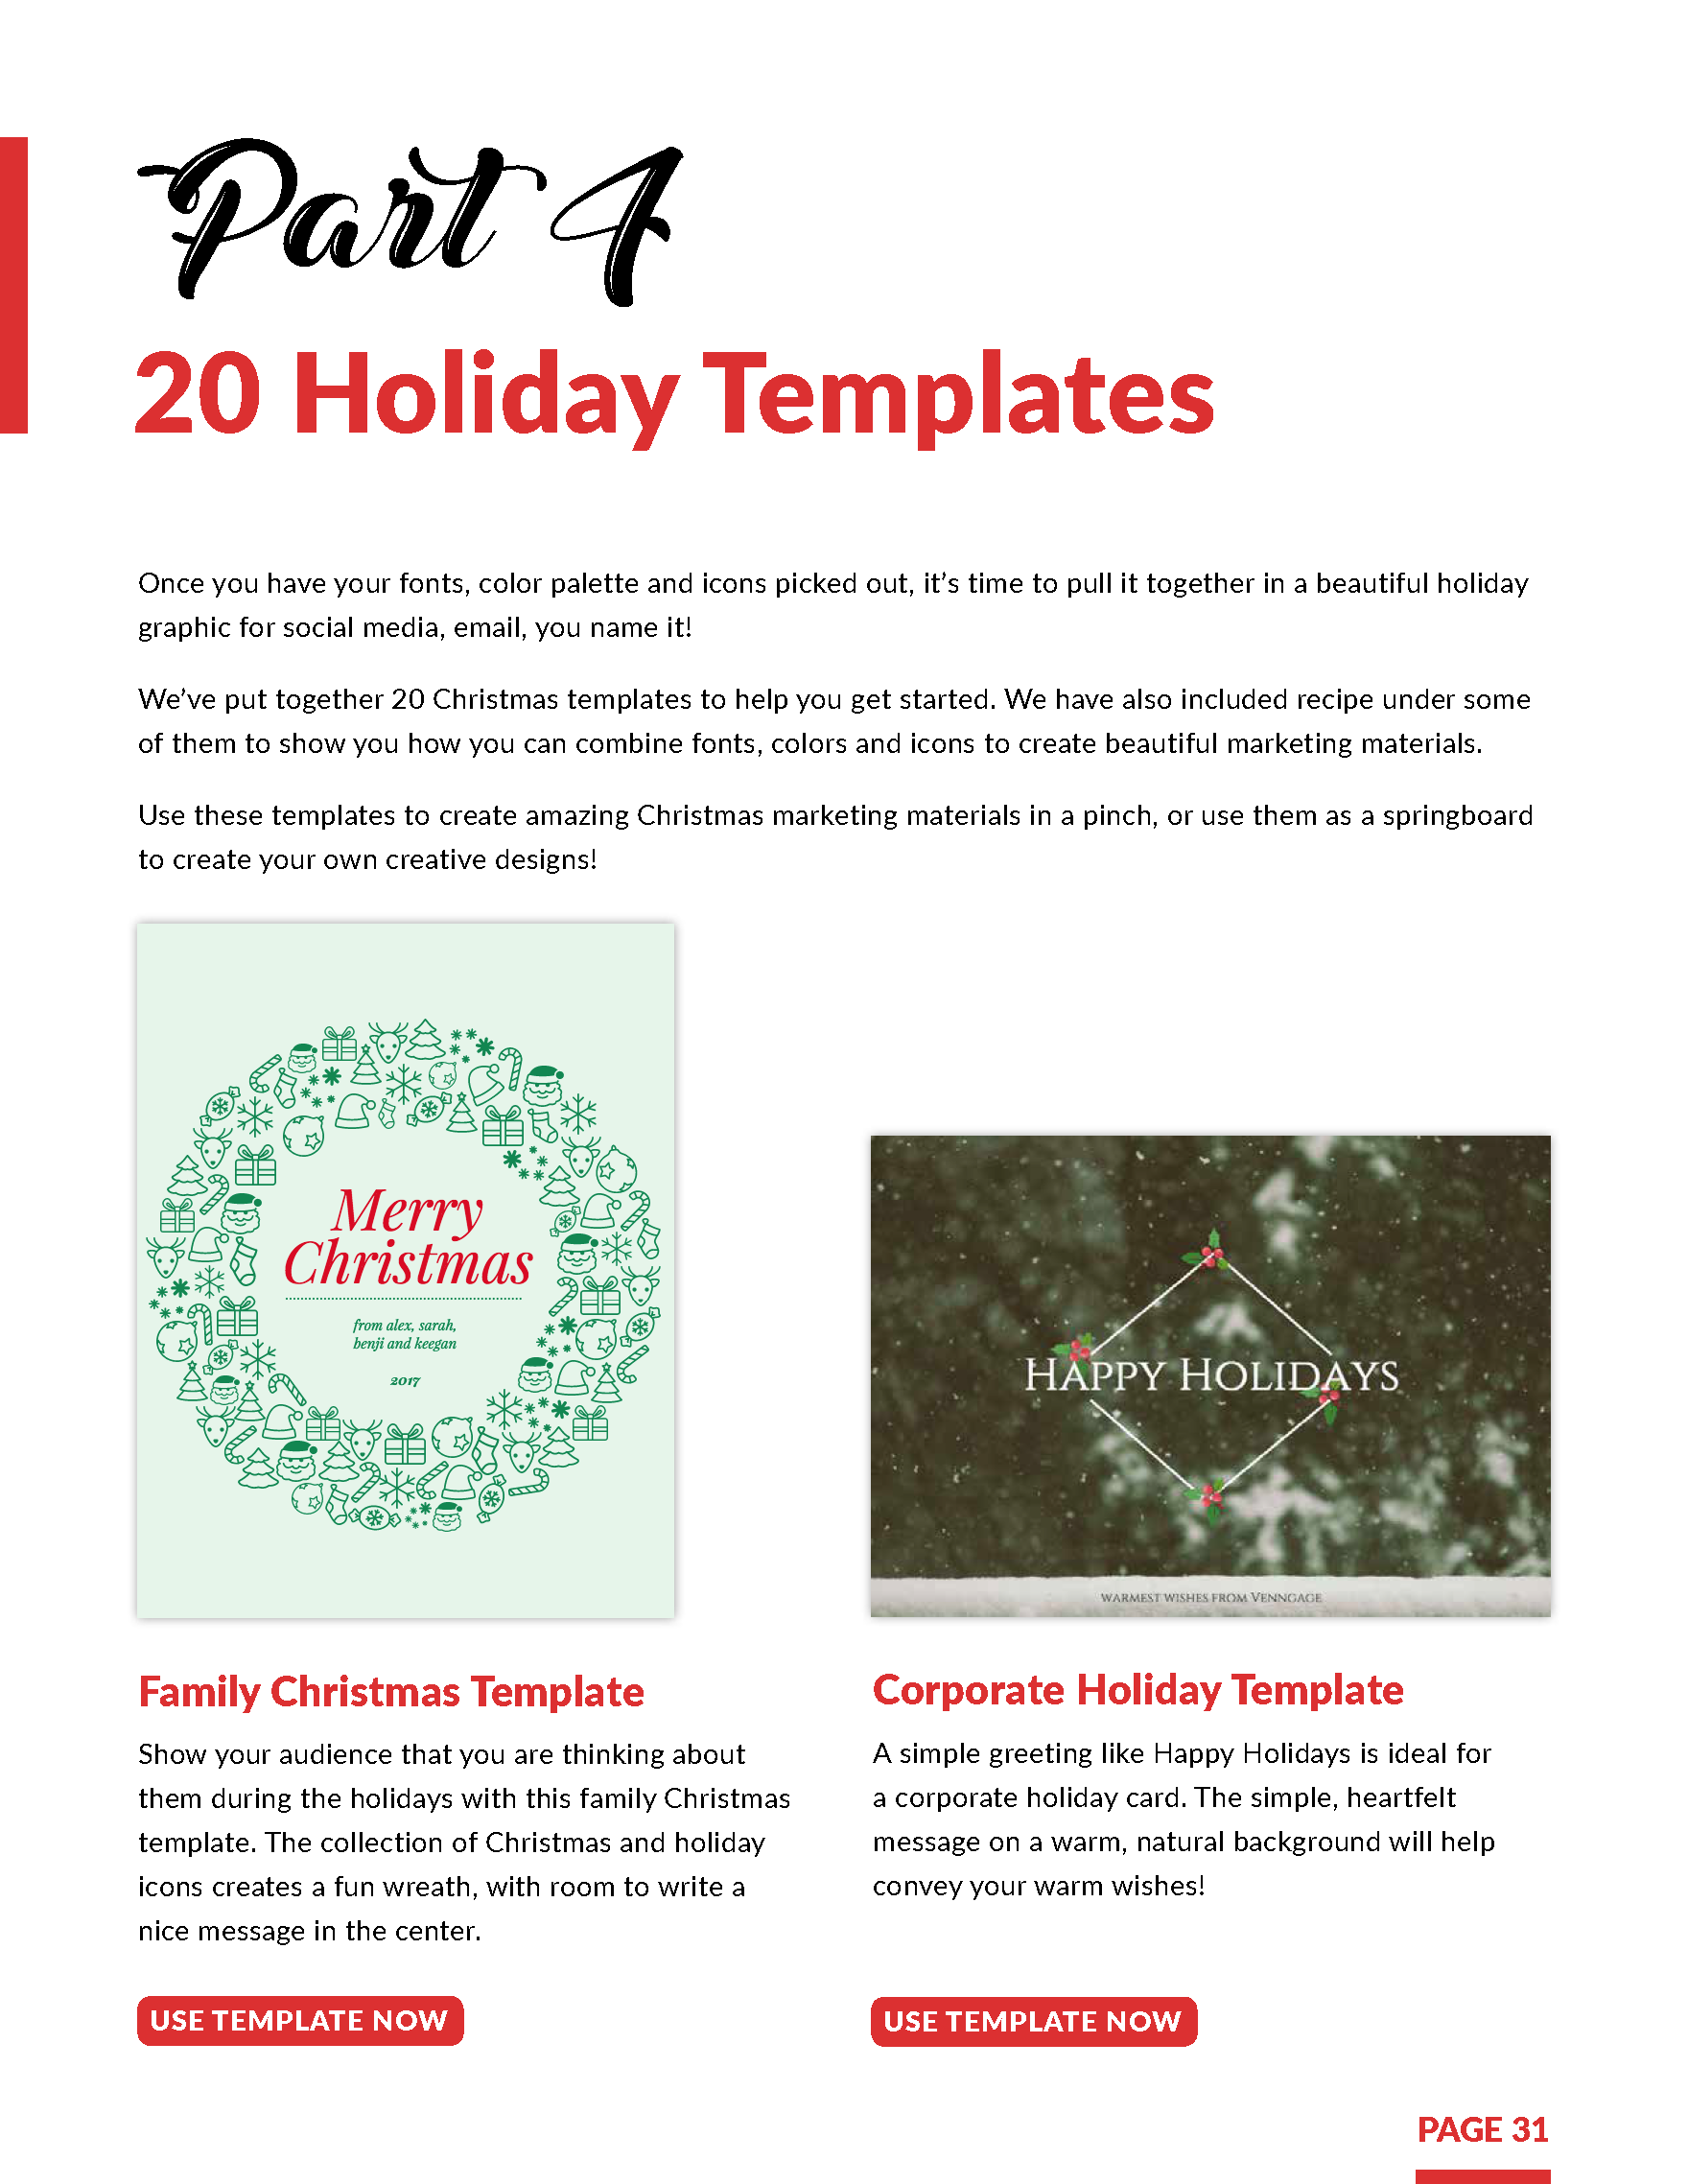 Last Minute Holiday Marketing Kit Preview